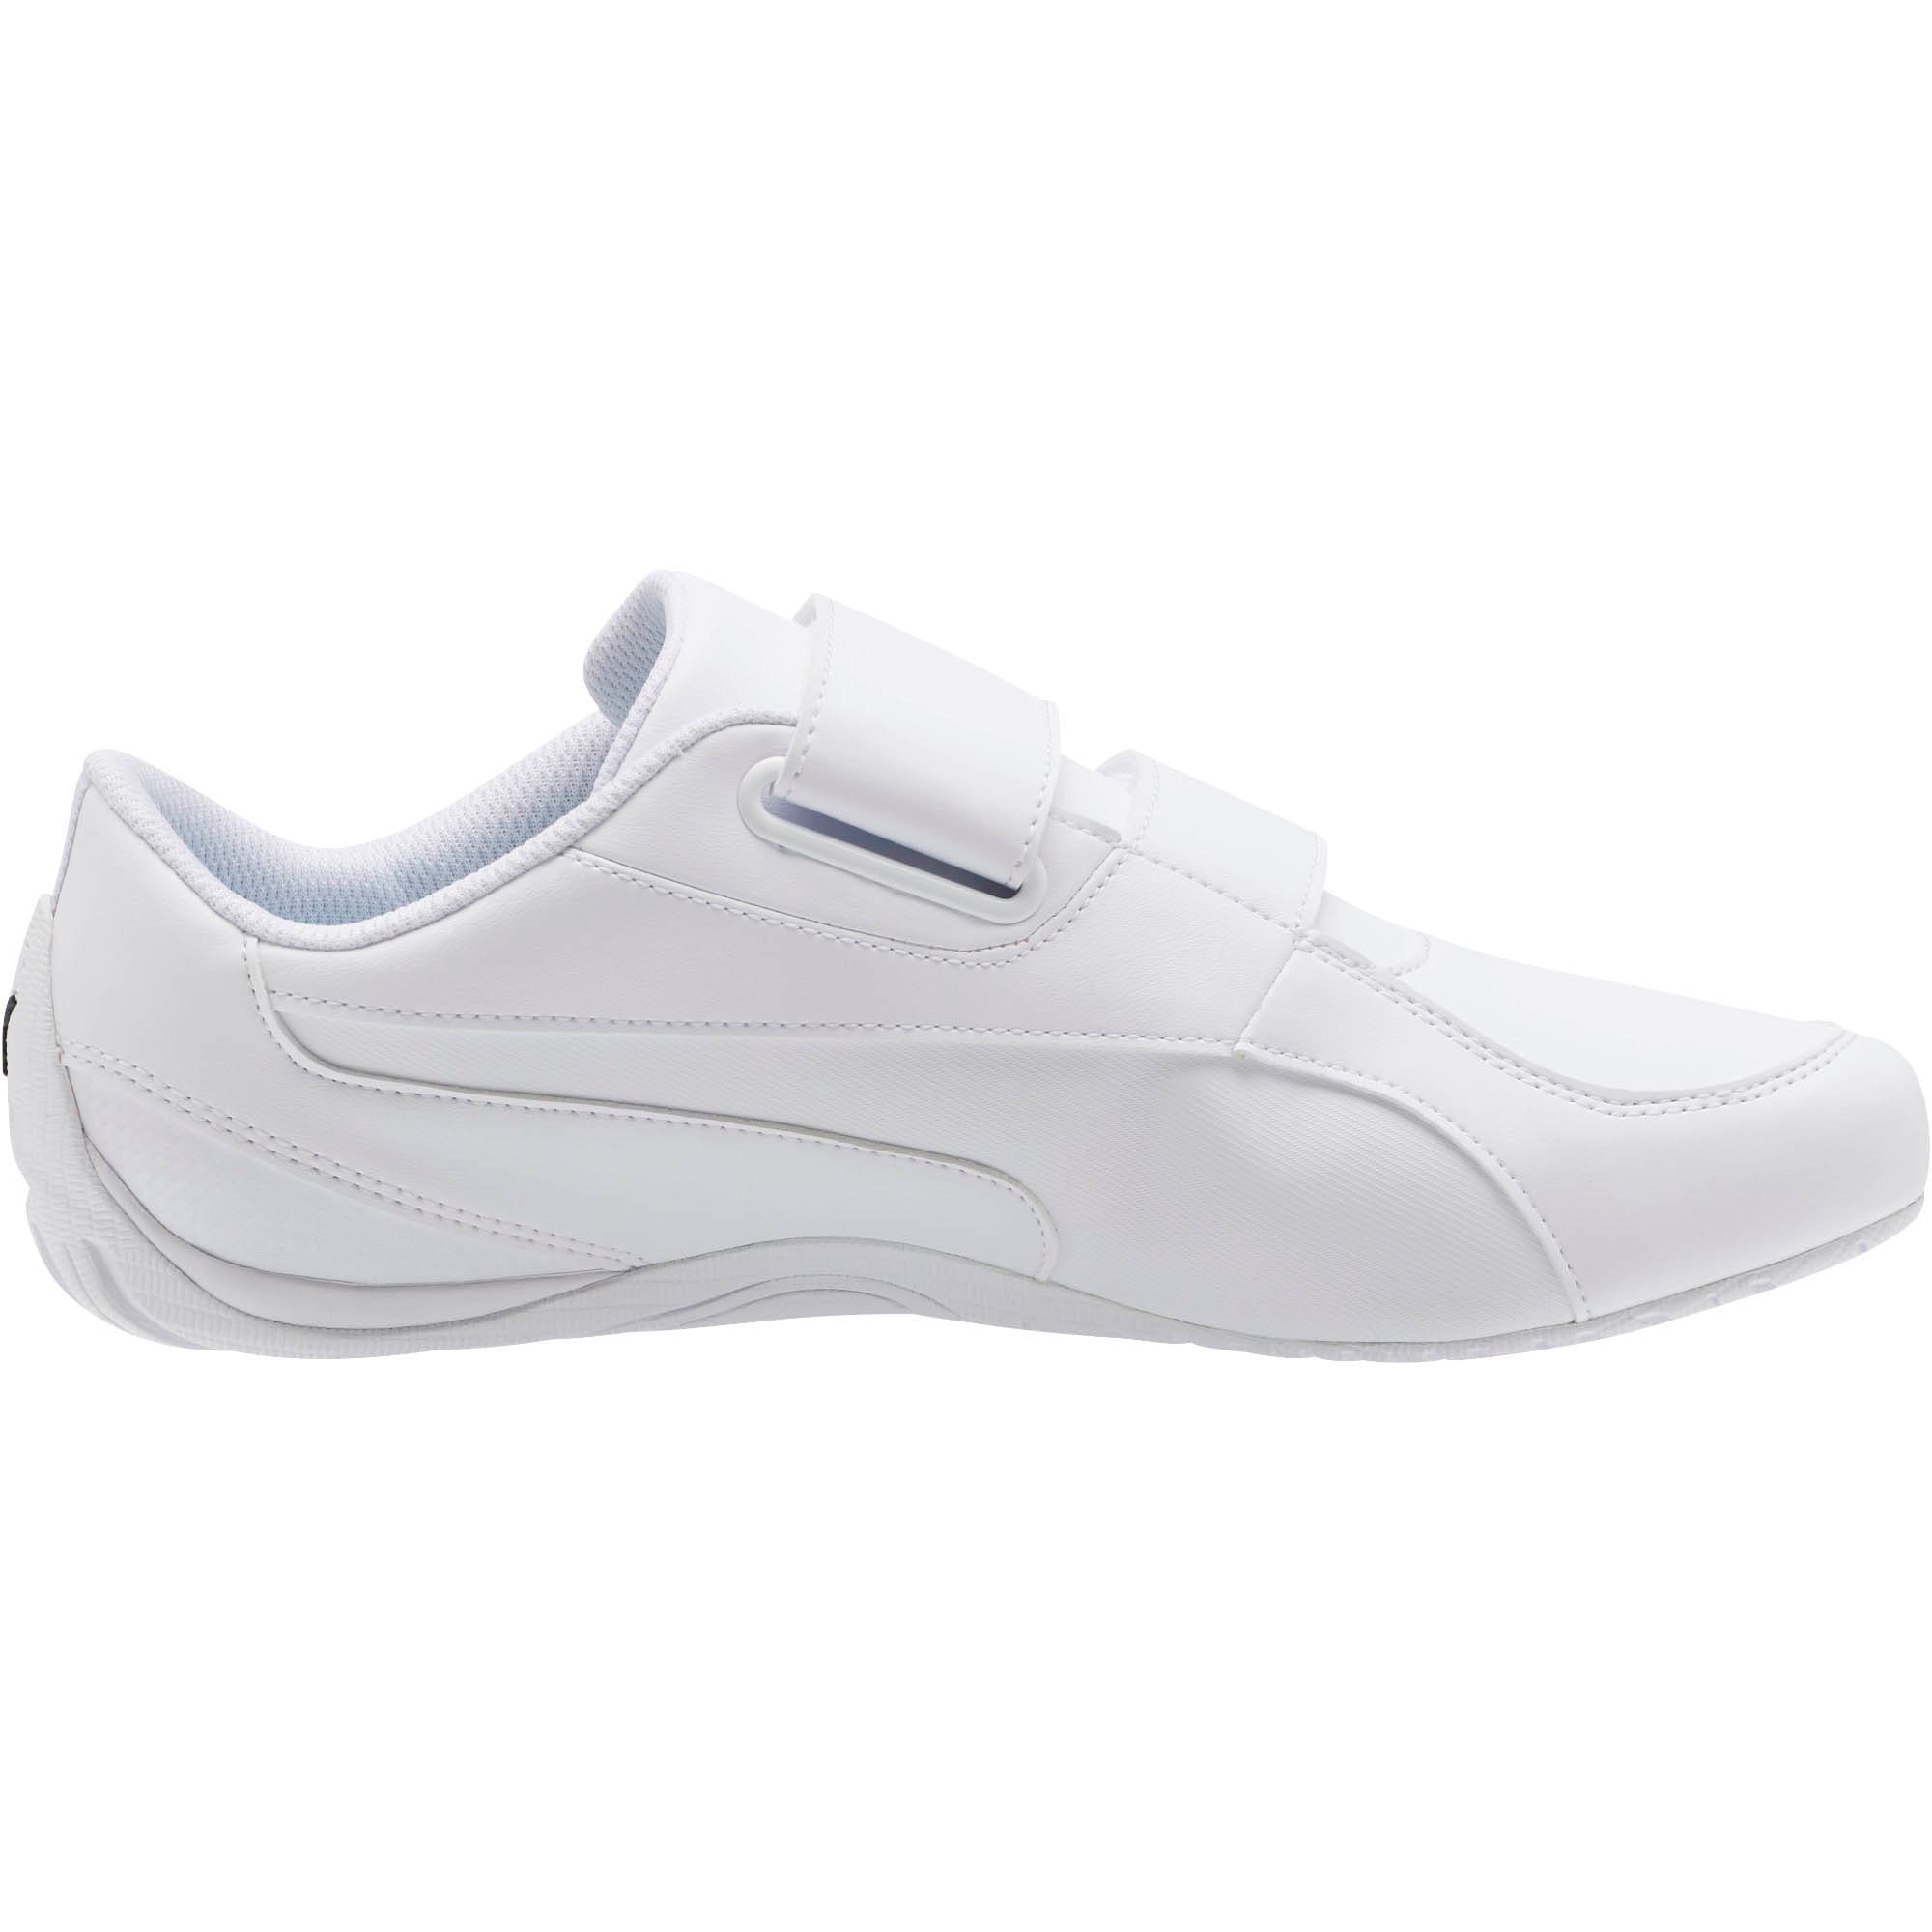 Thumbnail 4 of Drift Cat 5 AC Shoes, Puma White-Puma White, medium